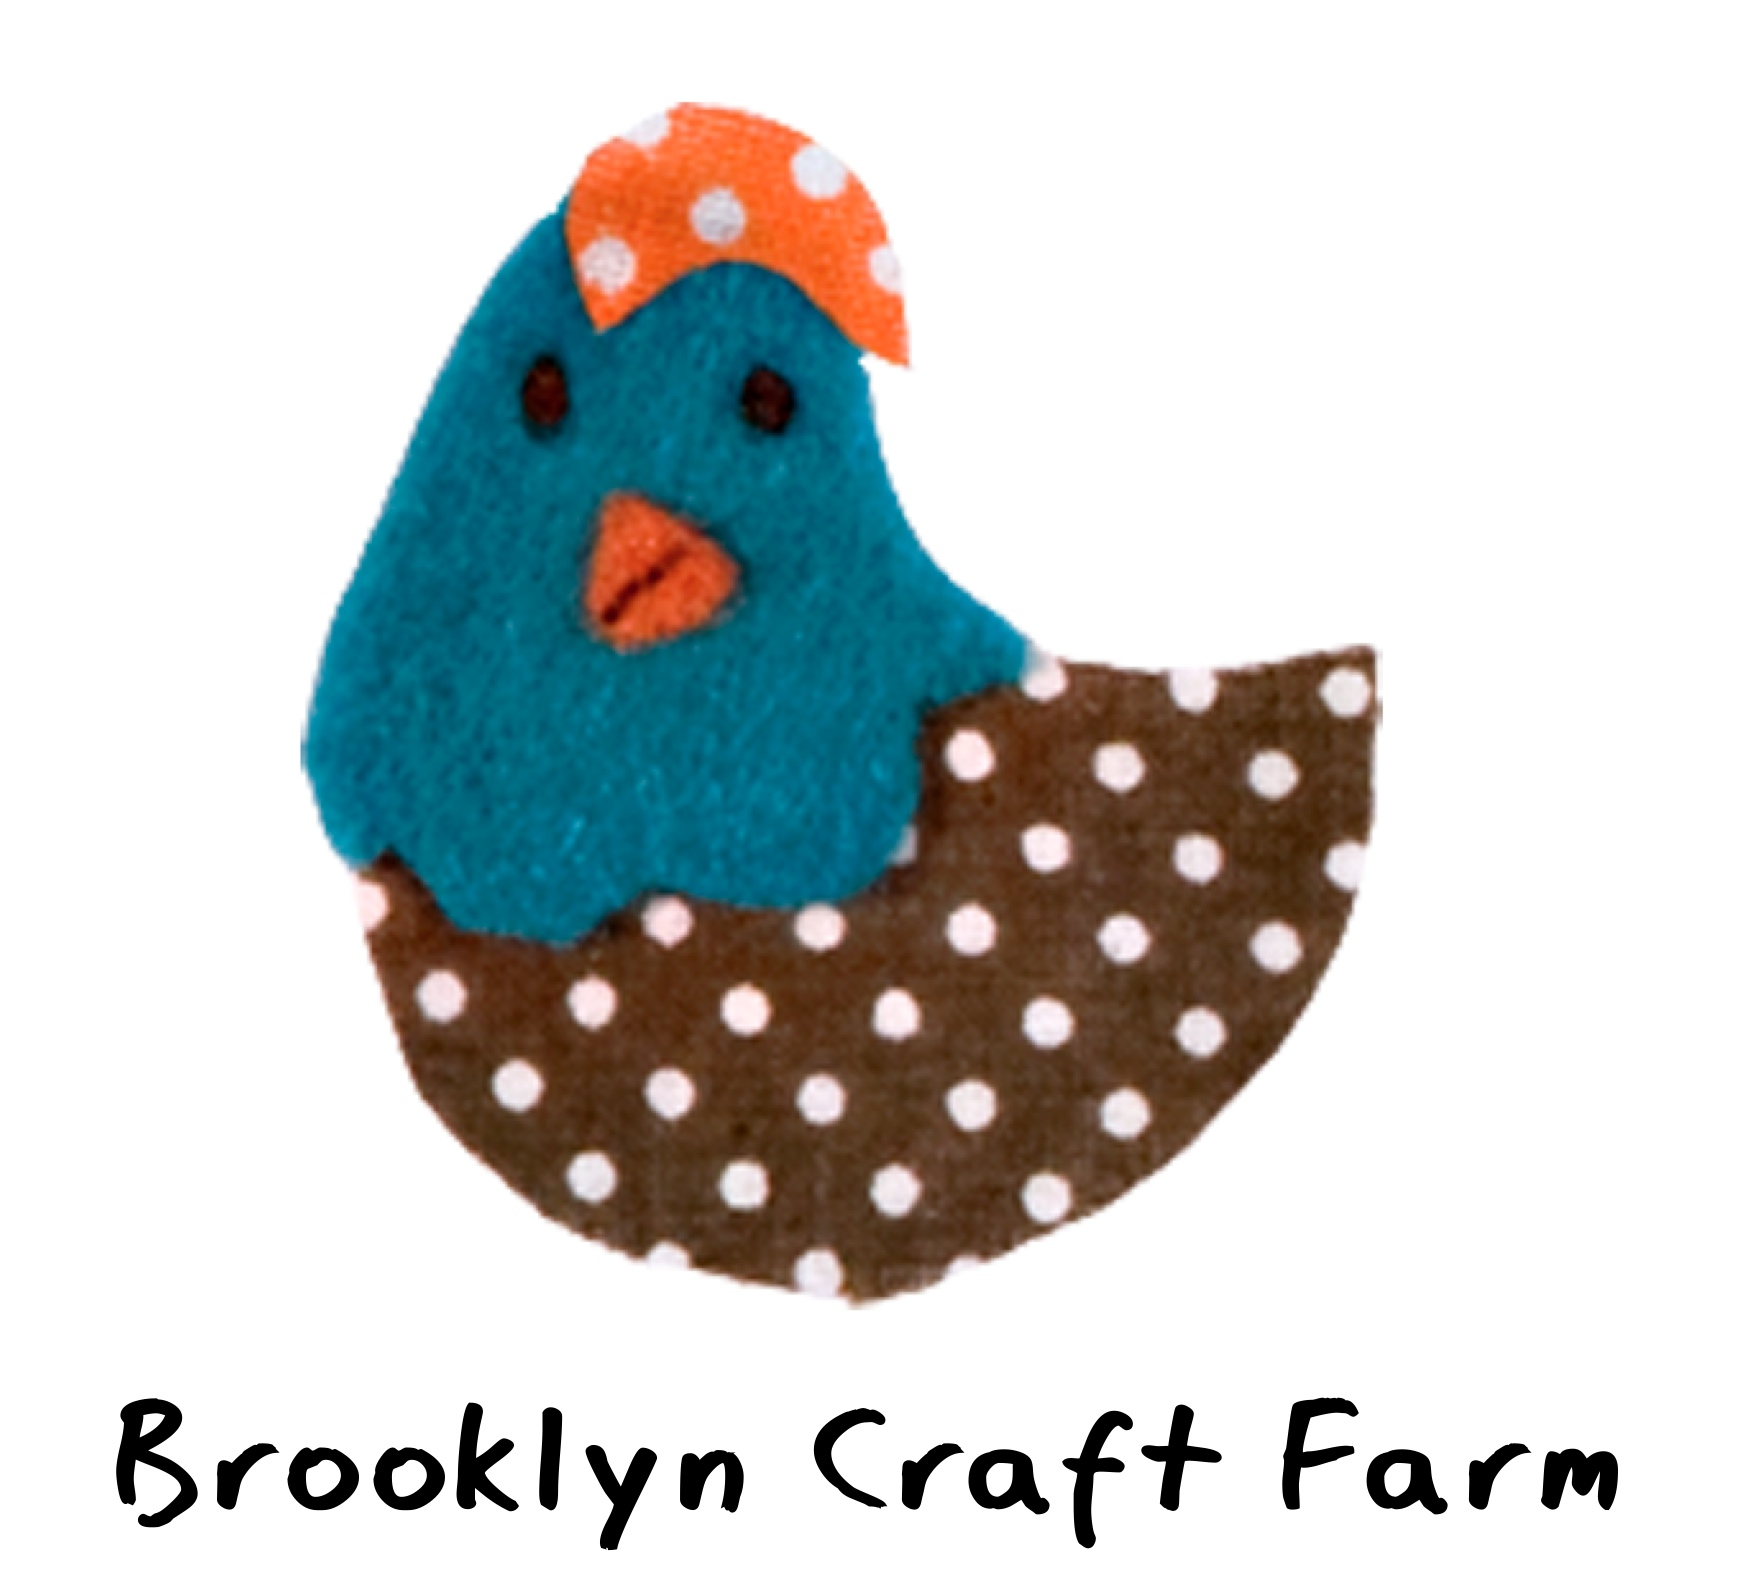 Brooklyn Craft Farm